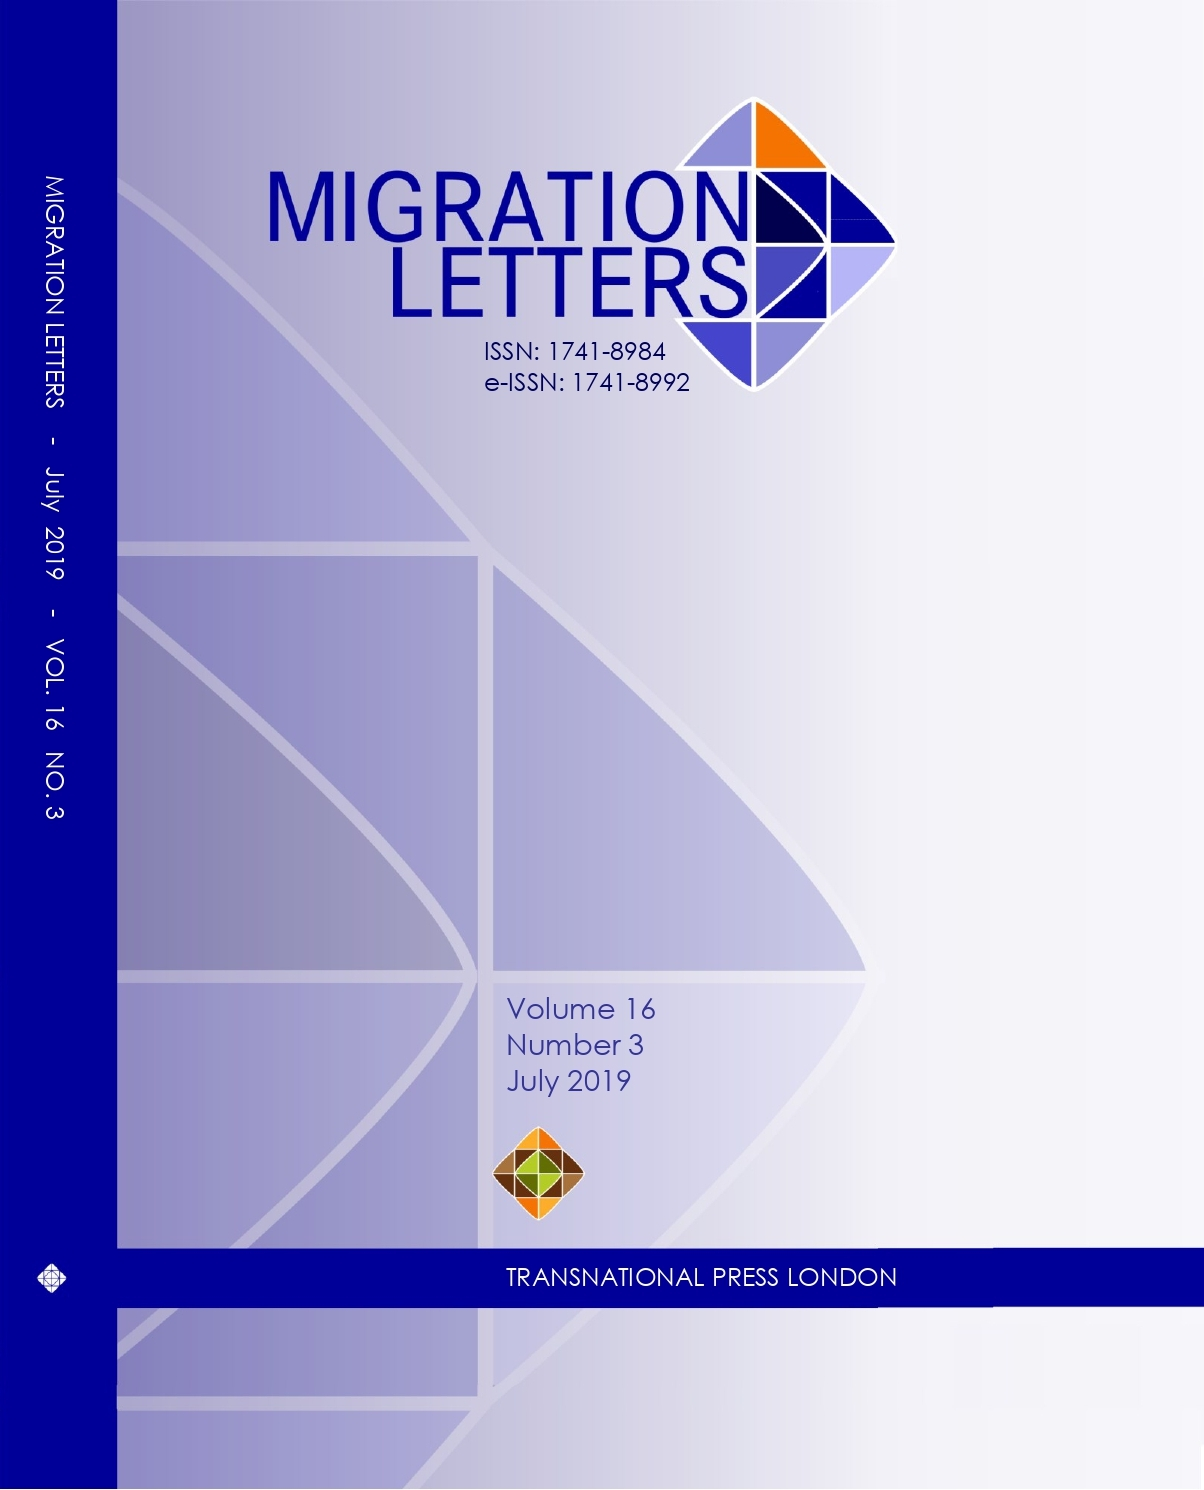 Treading lightly: regularised migrant workers in Europe